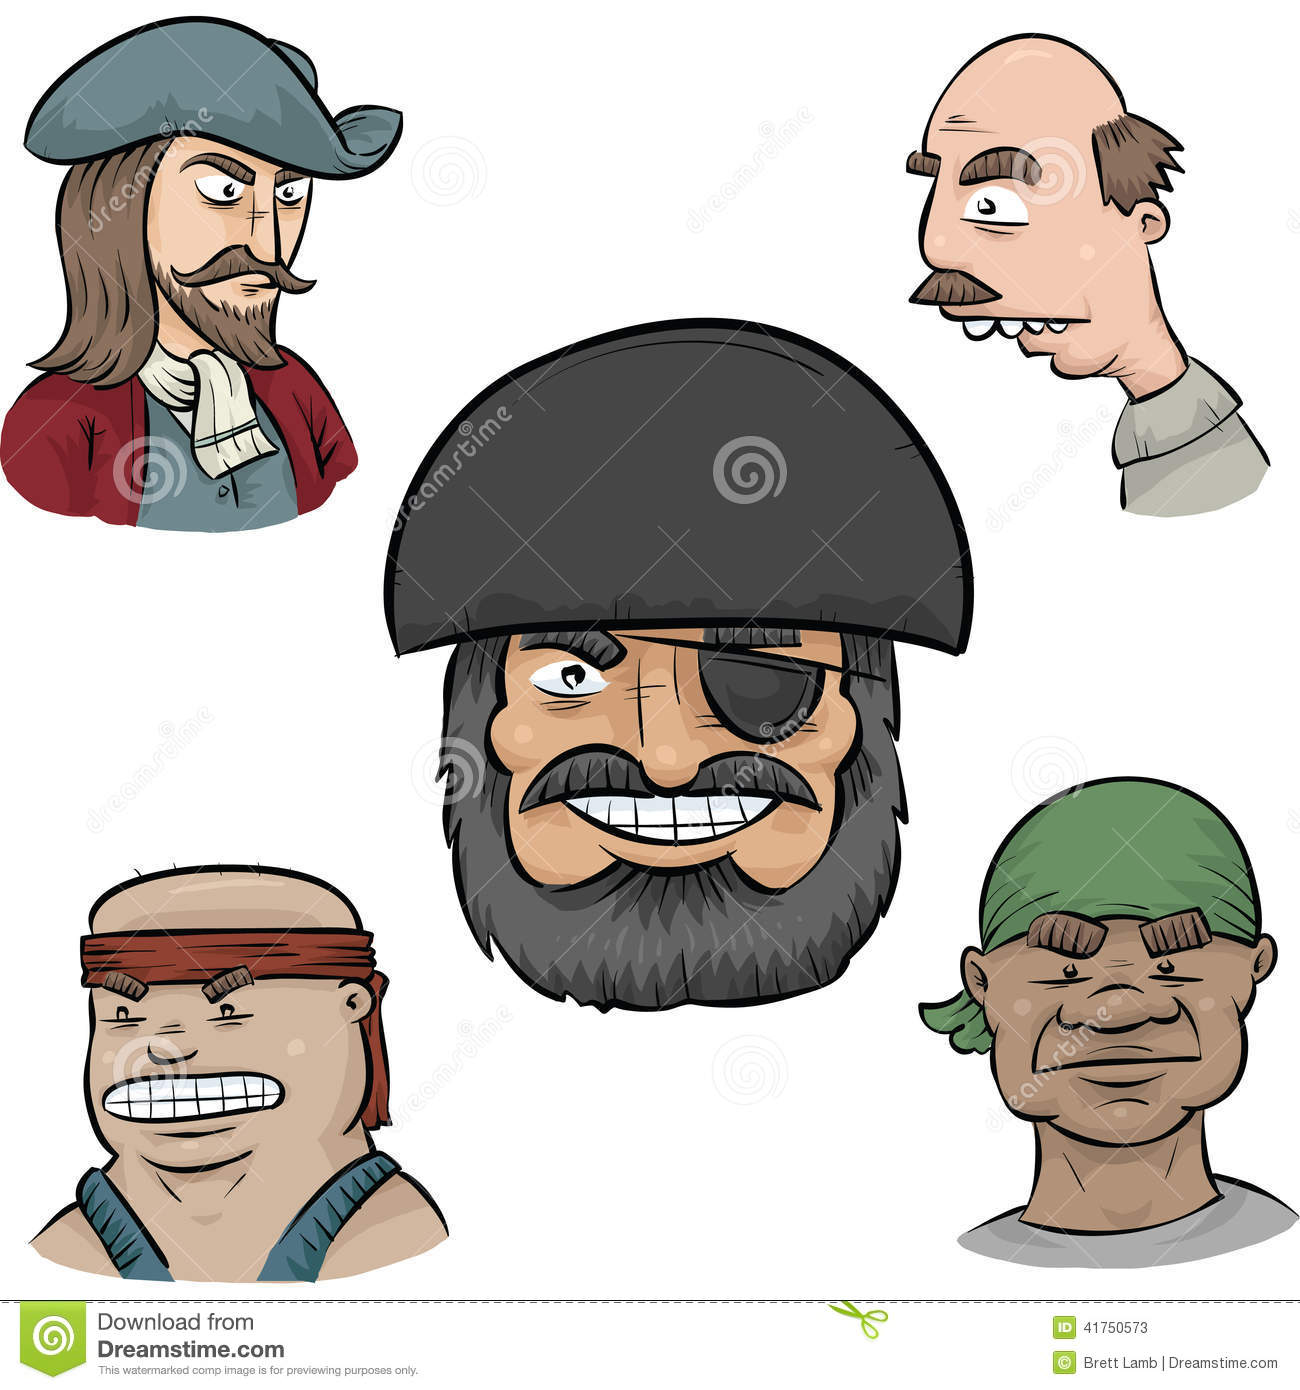 Uncategorized Pirate Faces pirate faces stock illustration image of crew tough 41750573 royalty free download faces